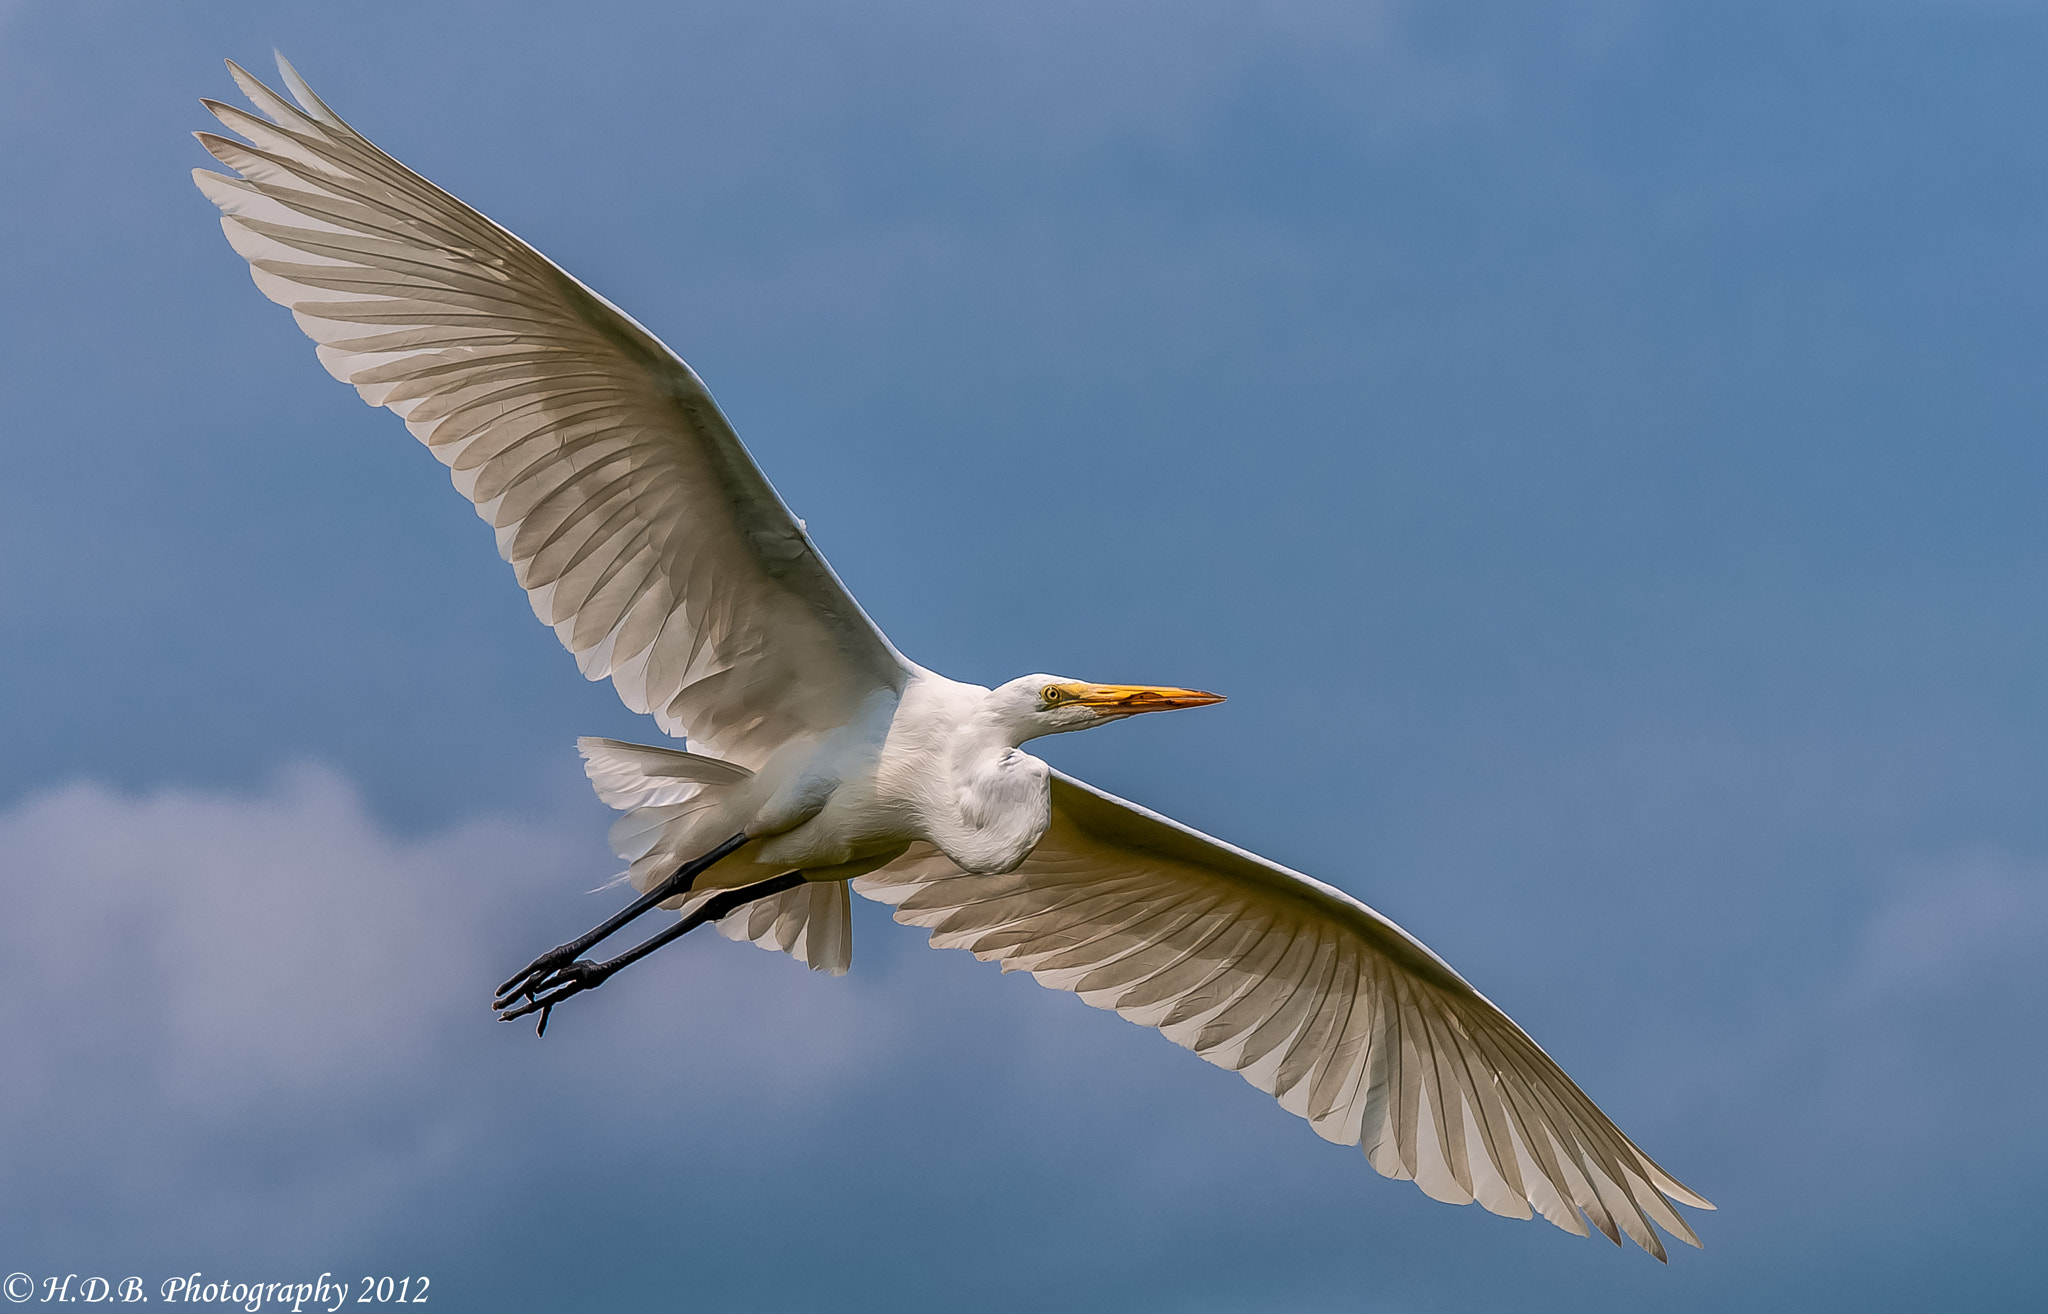 Photograph Soar by Harold Begun on 500px